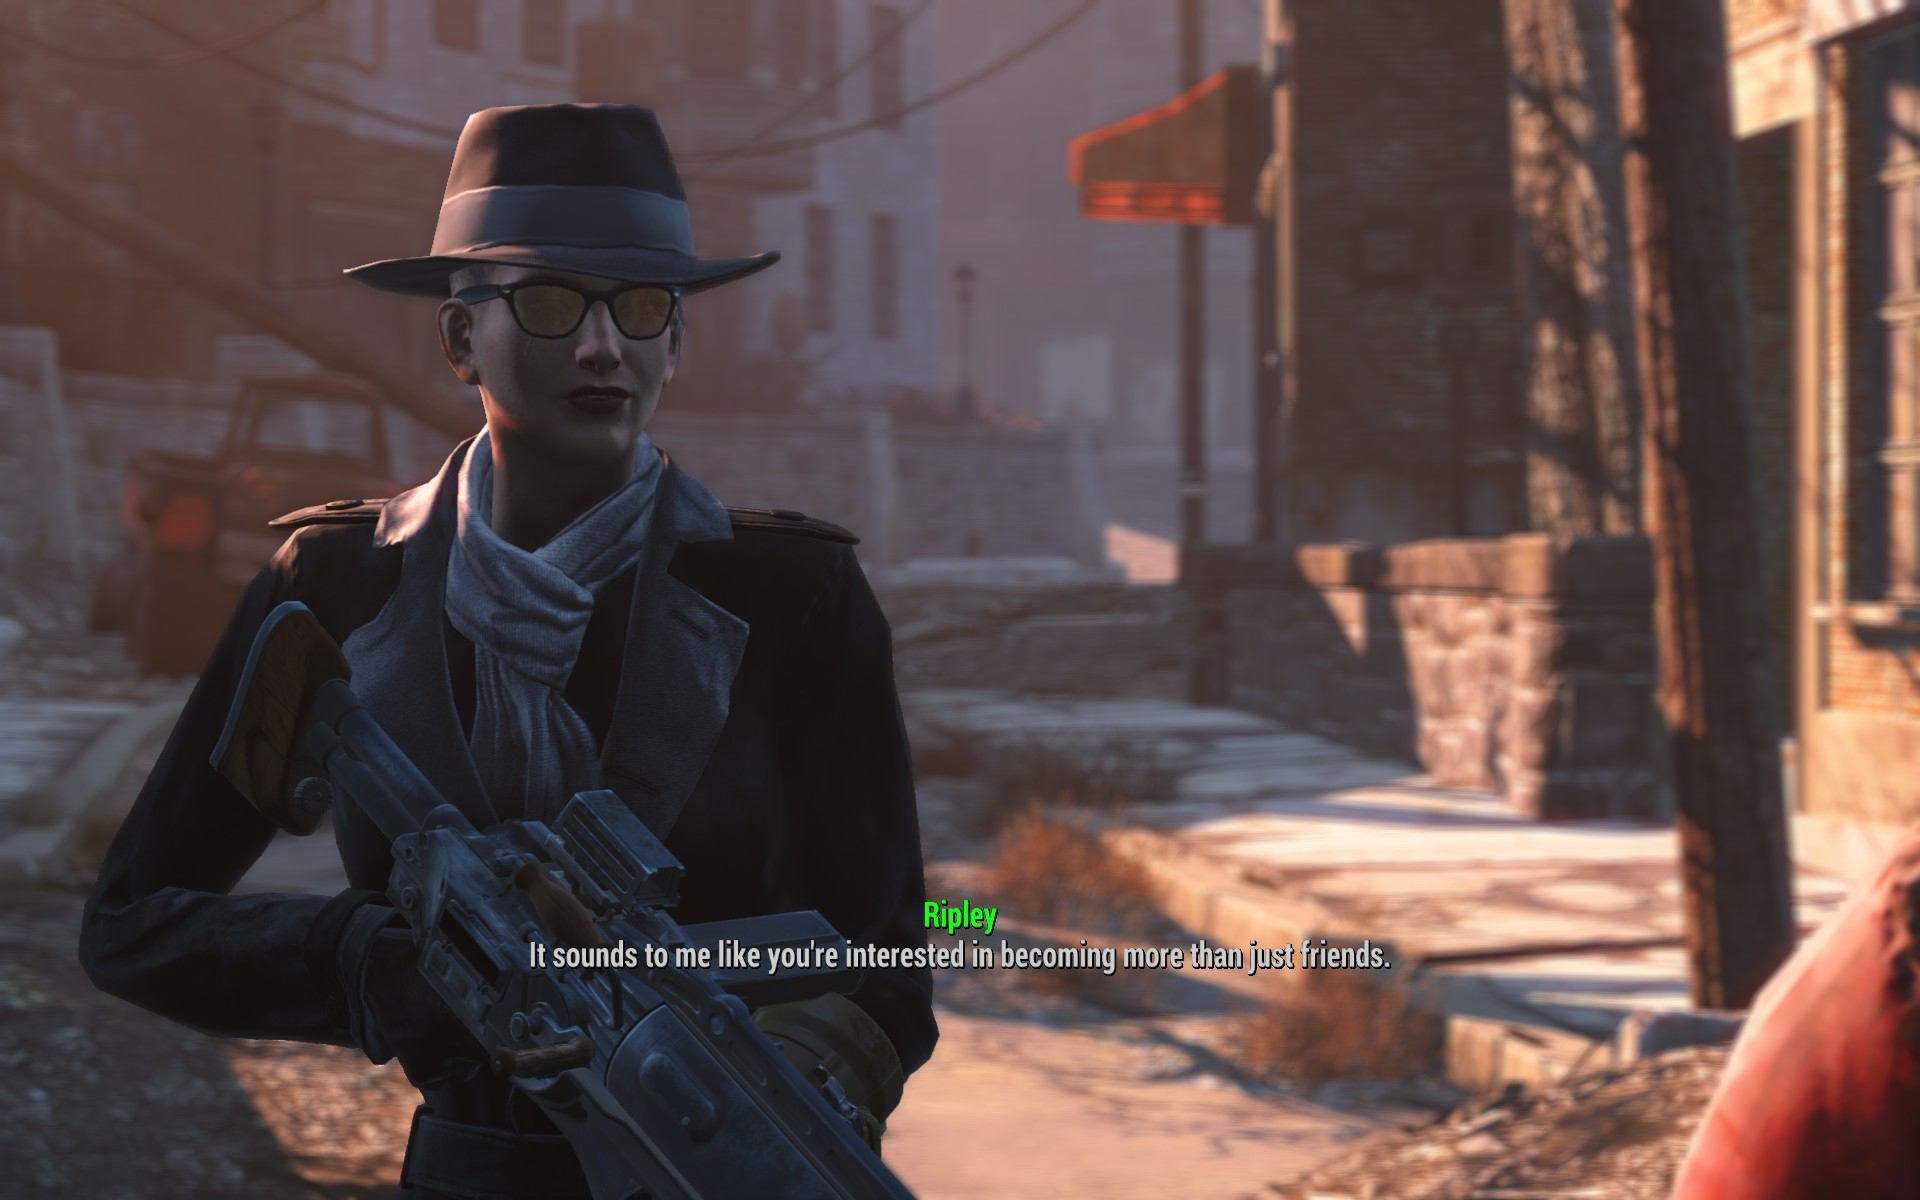 Fallout 4 Character in Silver Shroud Costume